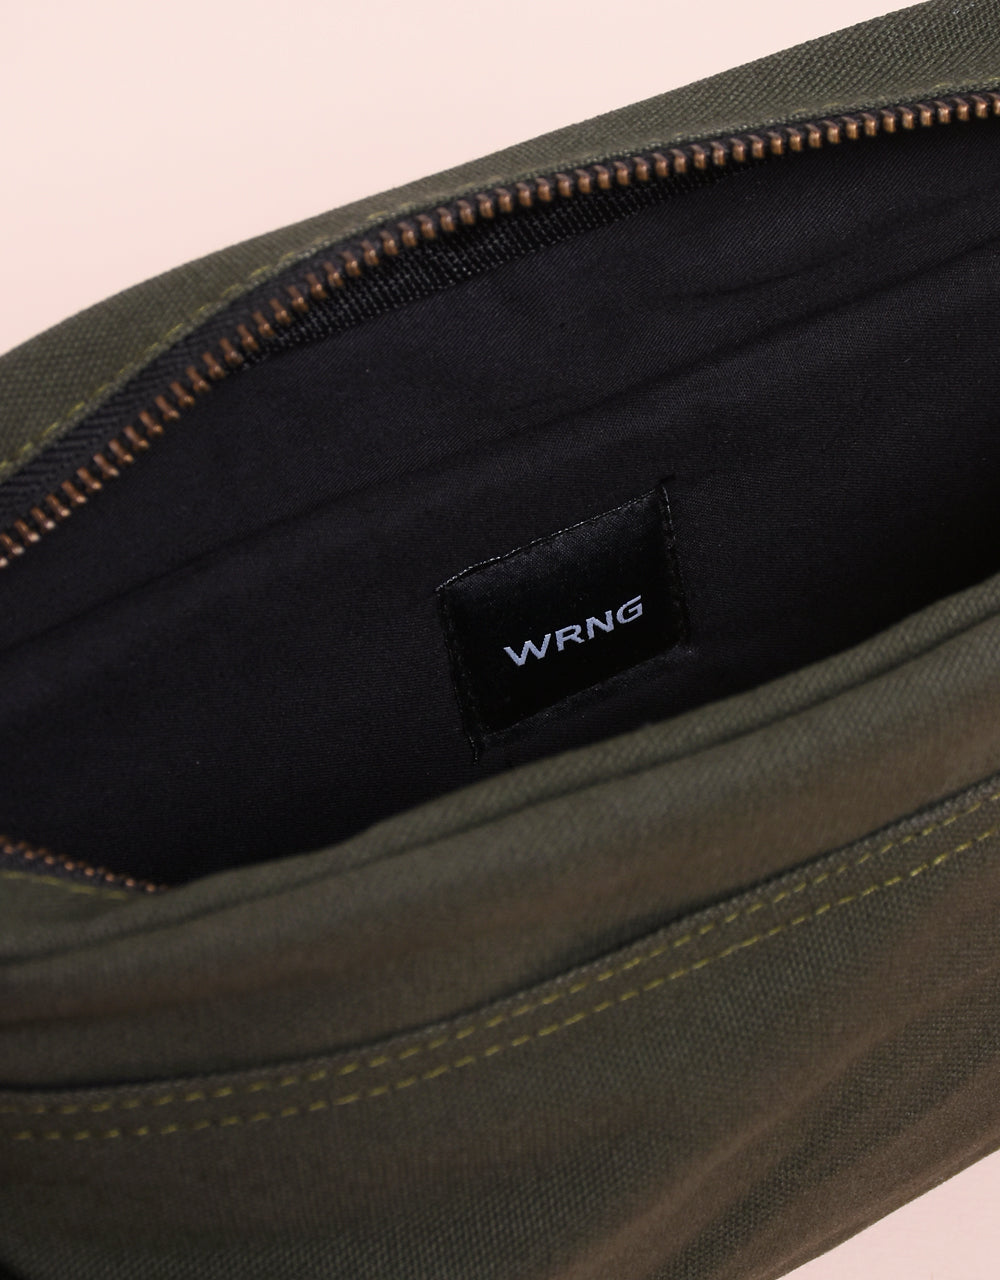 Barre 2 Sling Bag